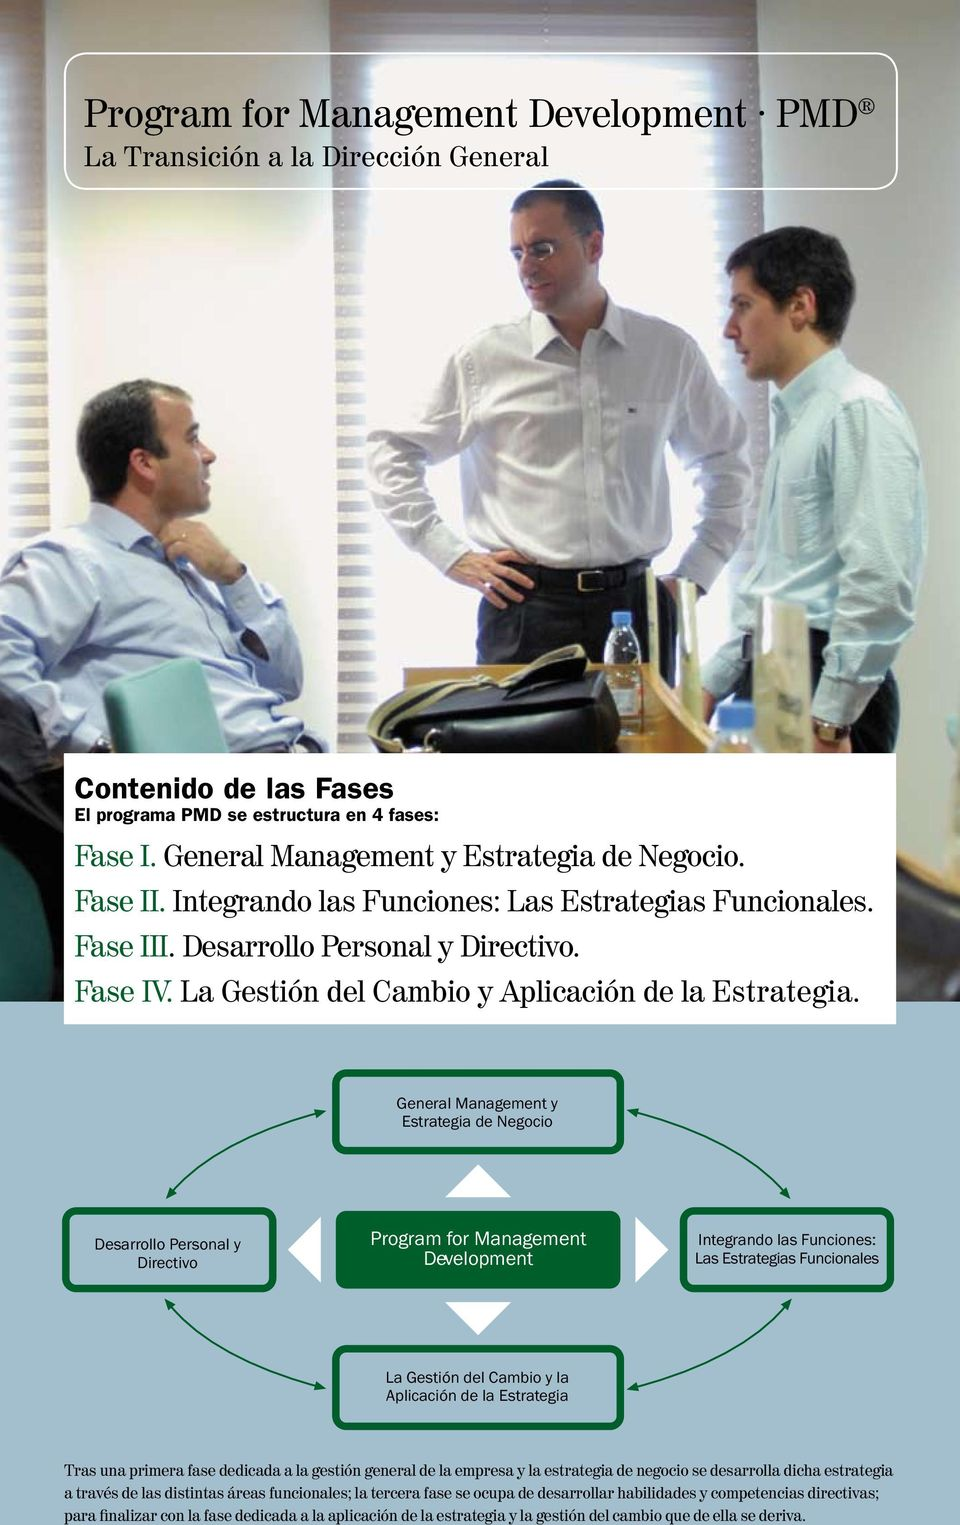 General Management y Estrategia de Negocio Desarrollo Personal y Directivo Program for Management Development Integrando las Funciones: Las Estrategias Funcionales La Gestión del Cambio y la